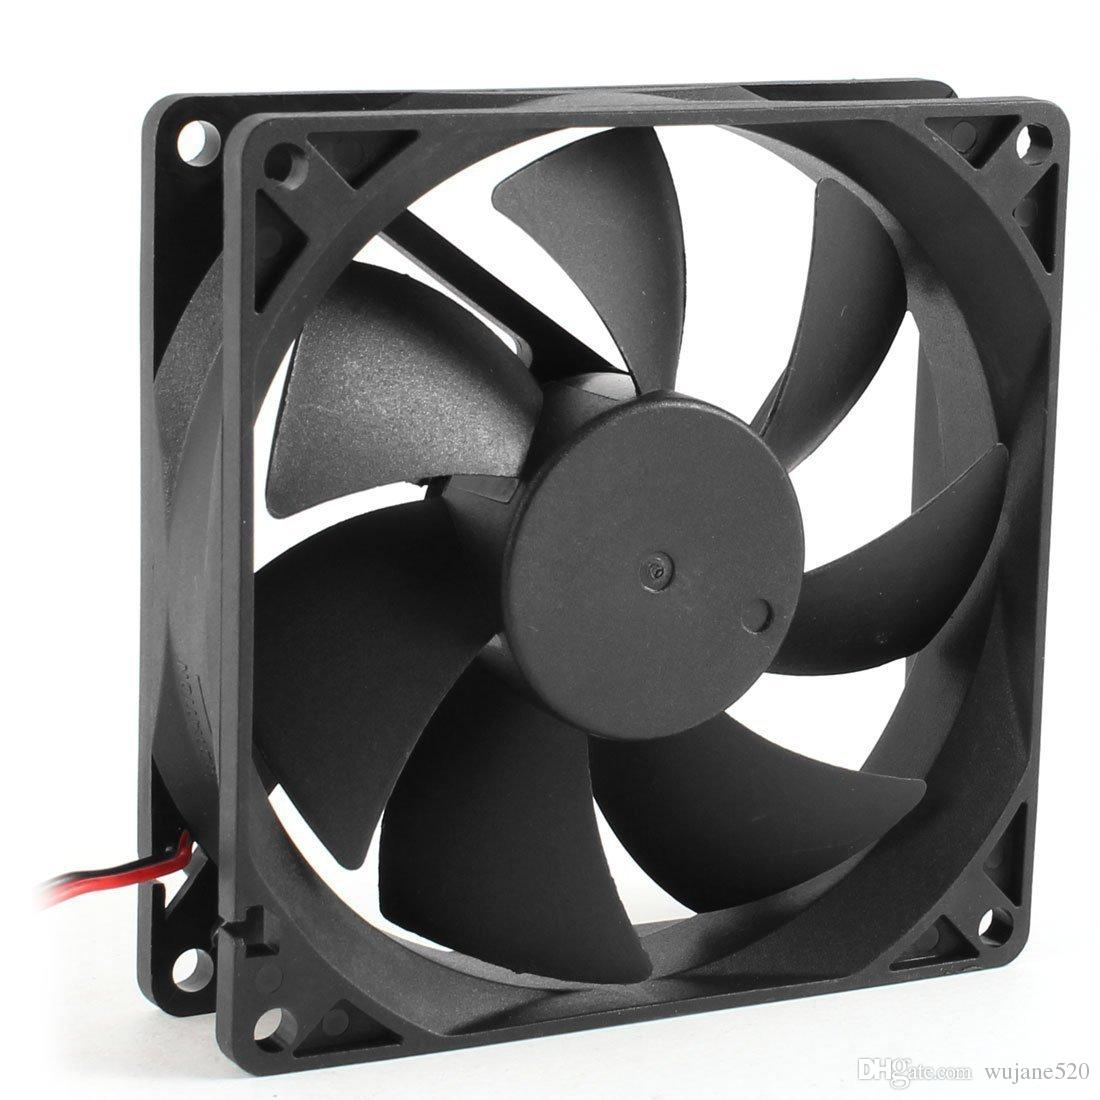 hight resolution of dc 6015 12v 24v cpu cooling fan pc cooler for laptop computer 7 blade quite sleeve ball bearing type cpu cooler pc fan 12v pc case fan wiring online with